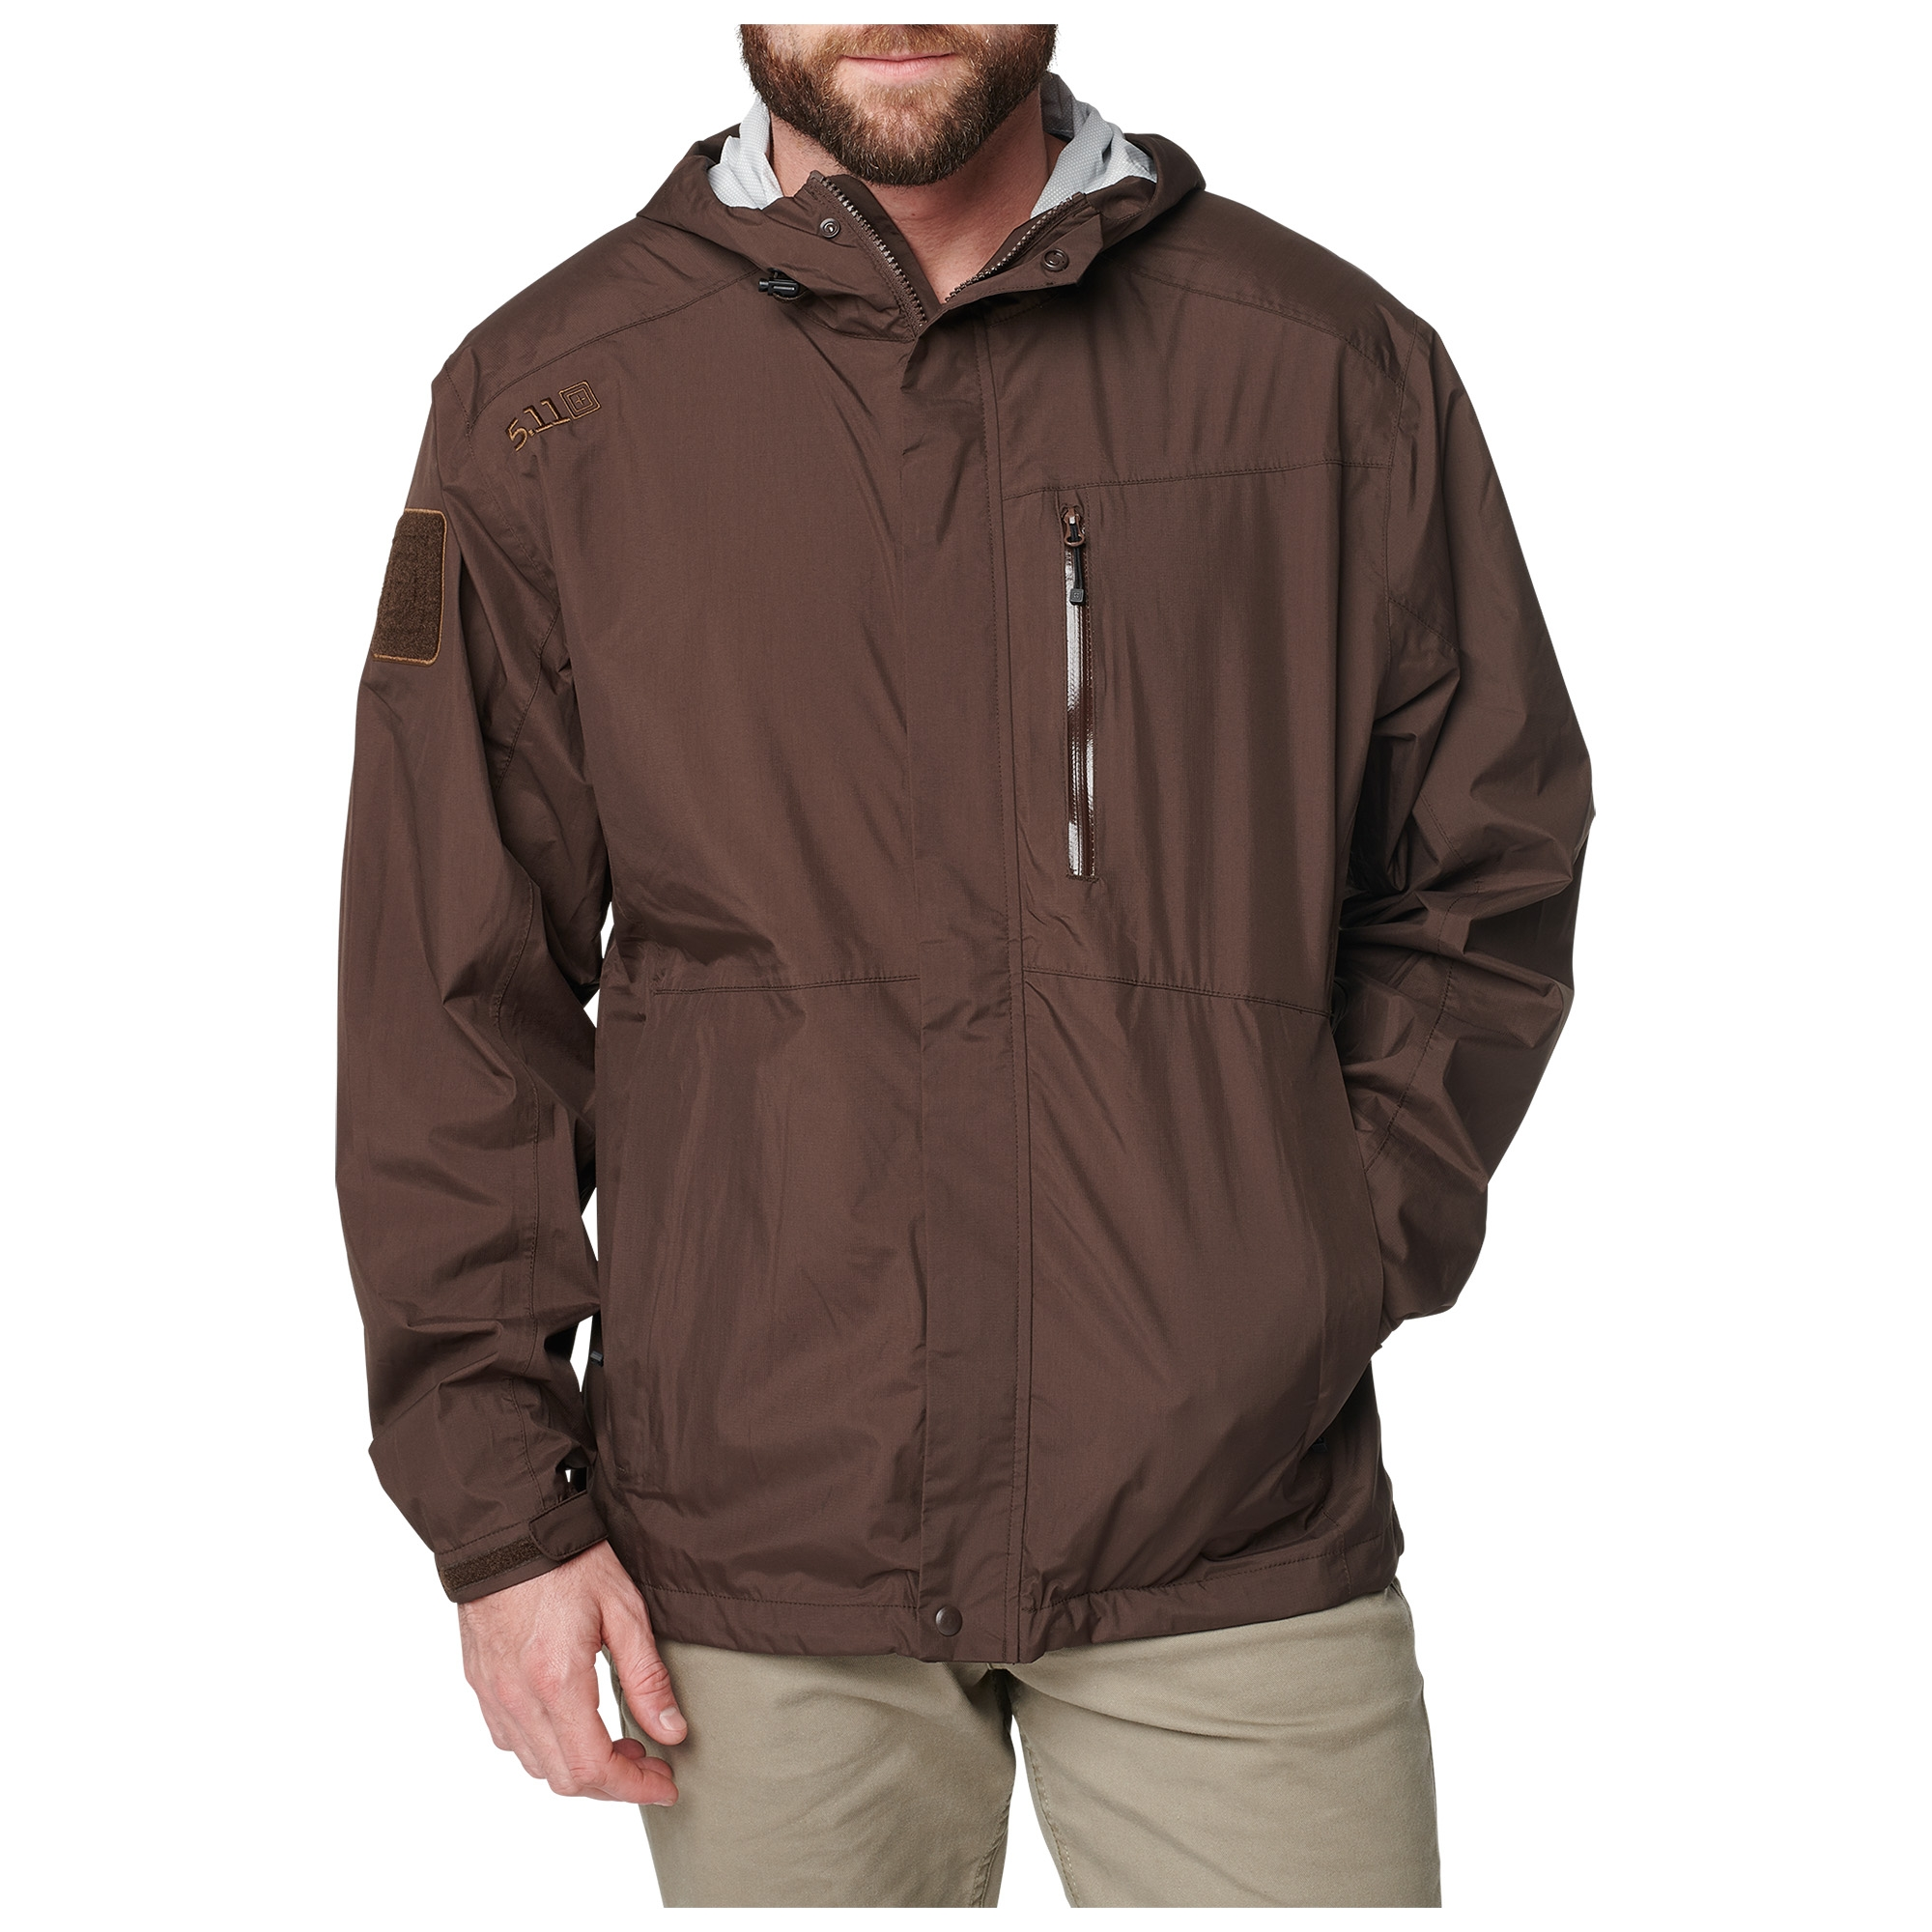 5.11 Tactical Men's Aurora Shell Jacket (Brown)